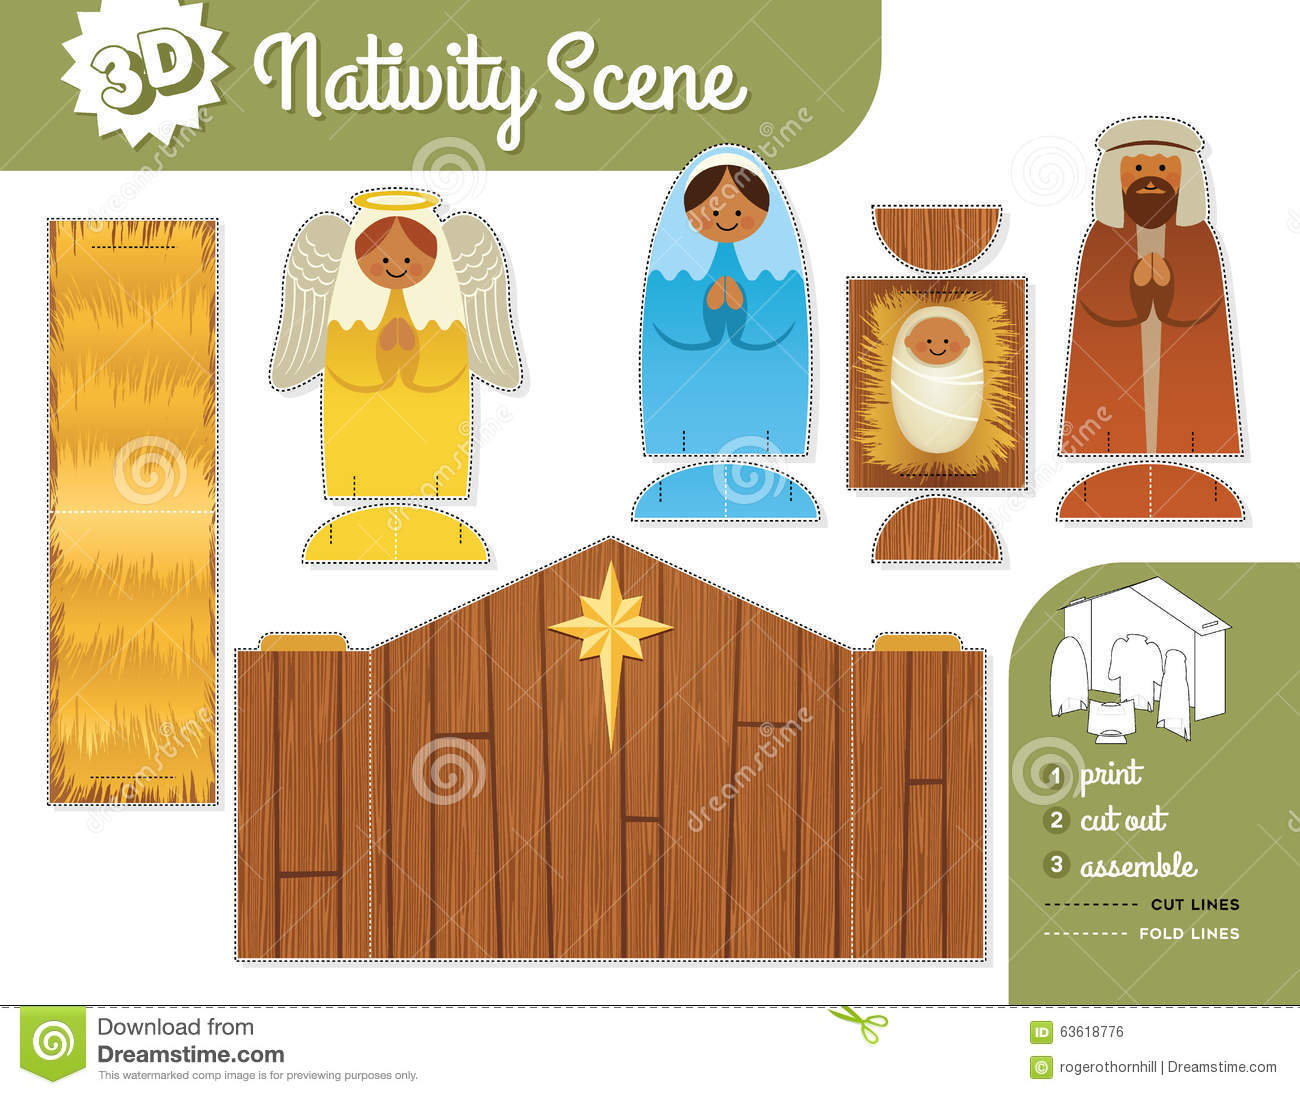 Nativity Scene. Print, cut out and assemble.children's activity set.